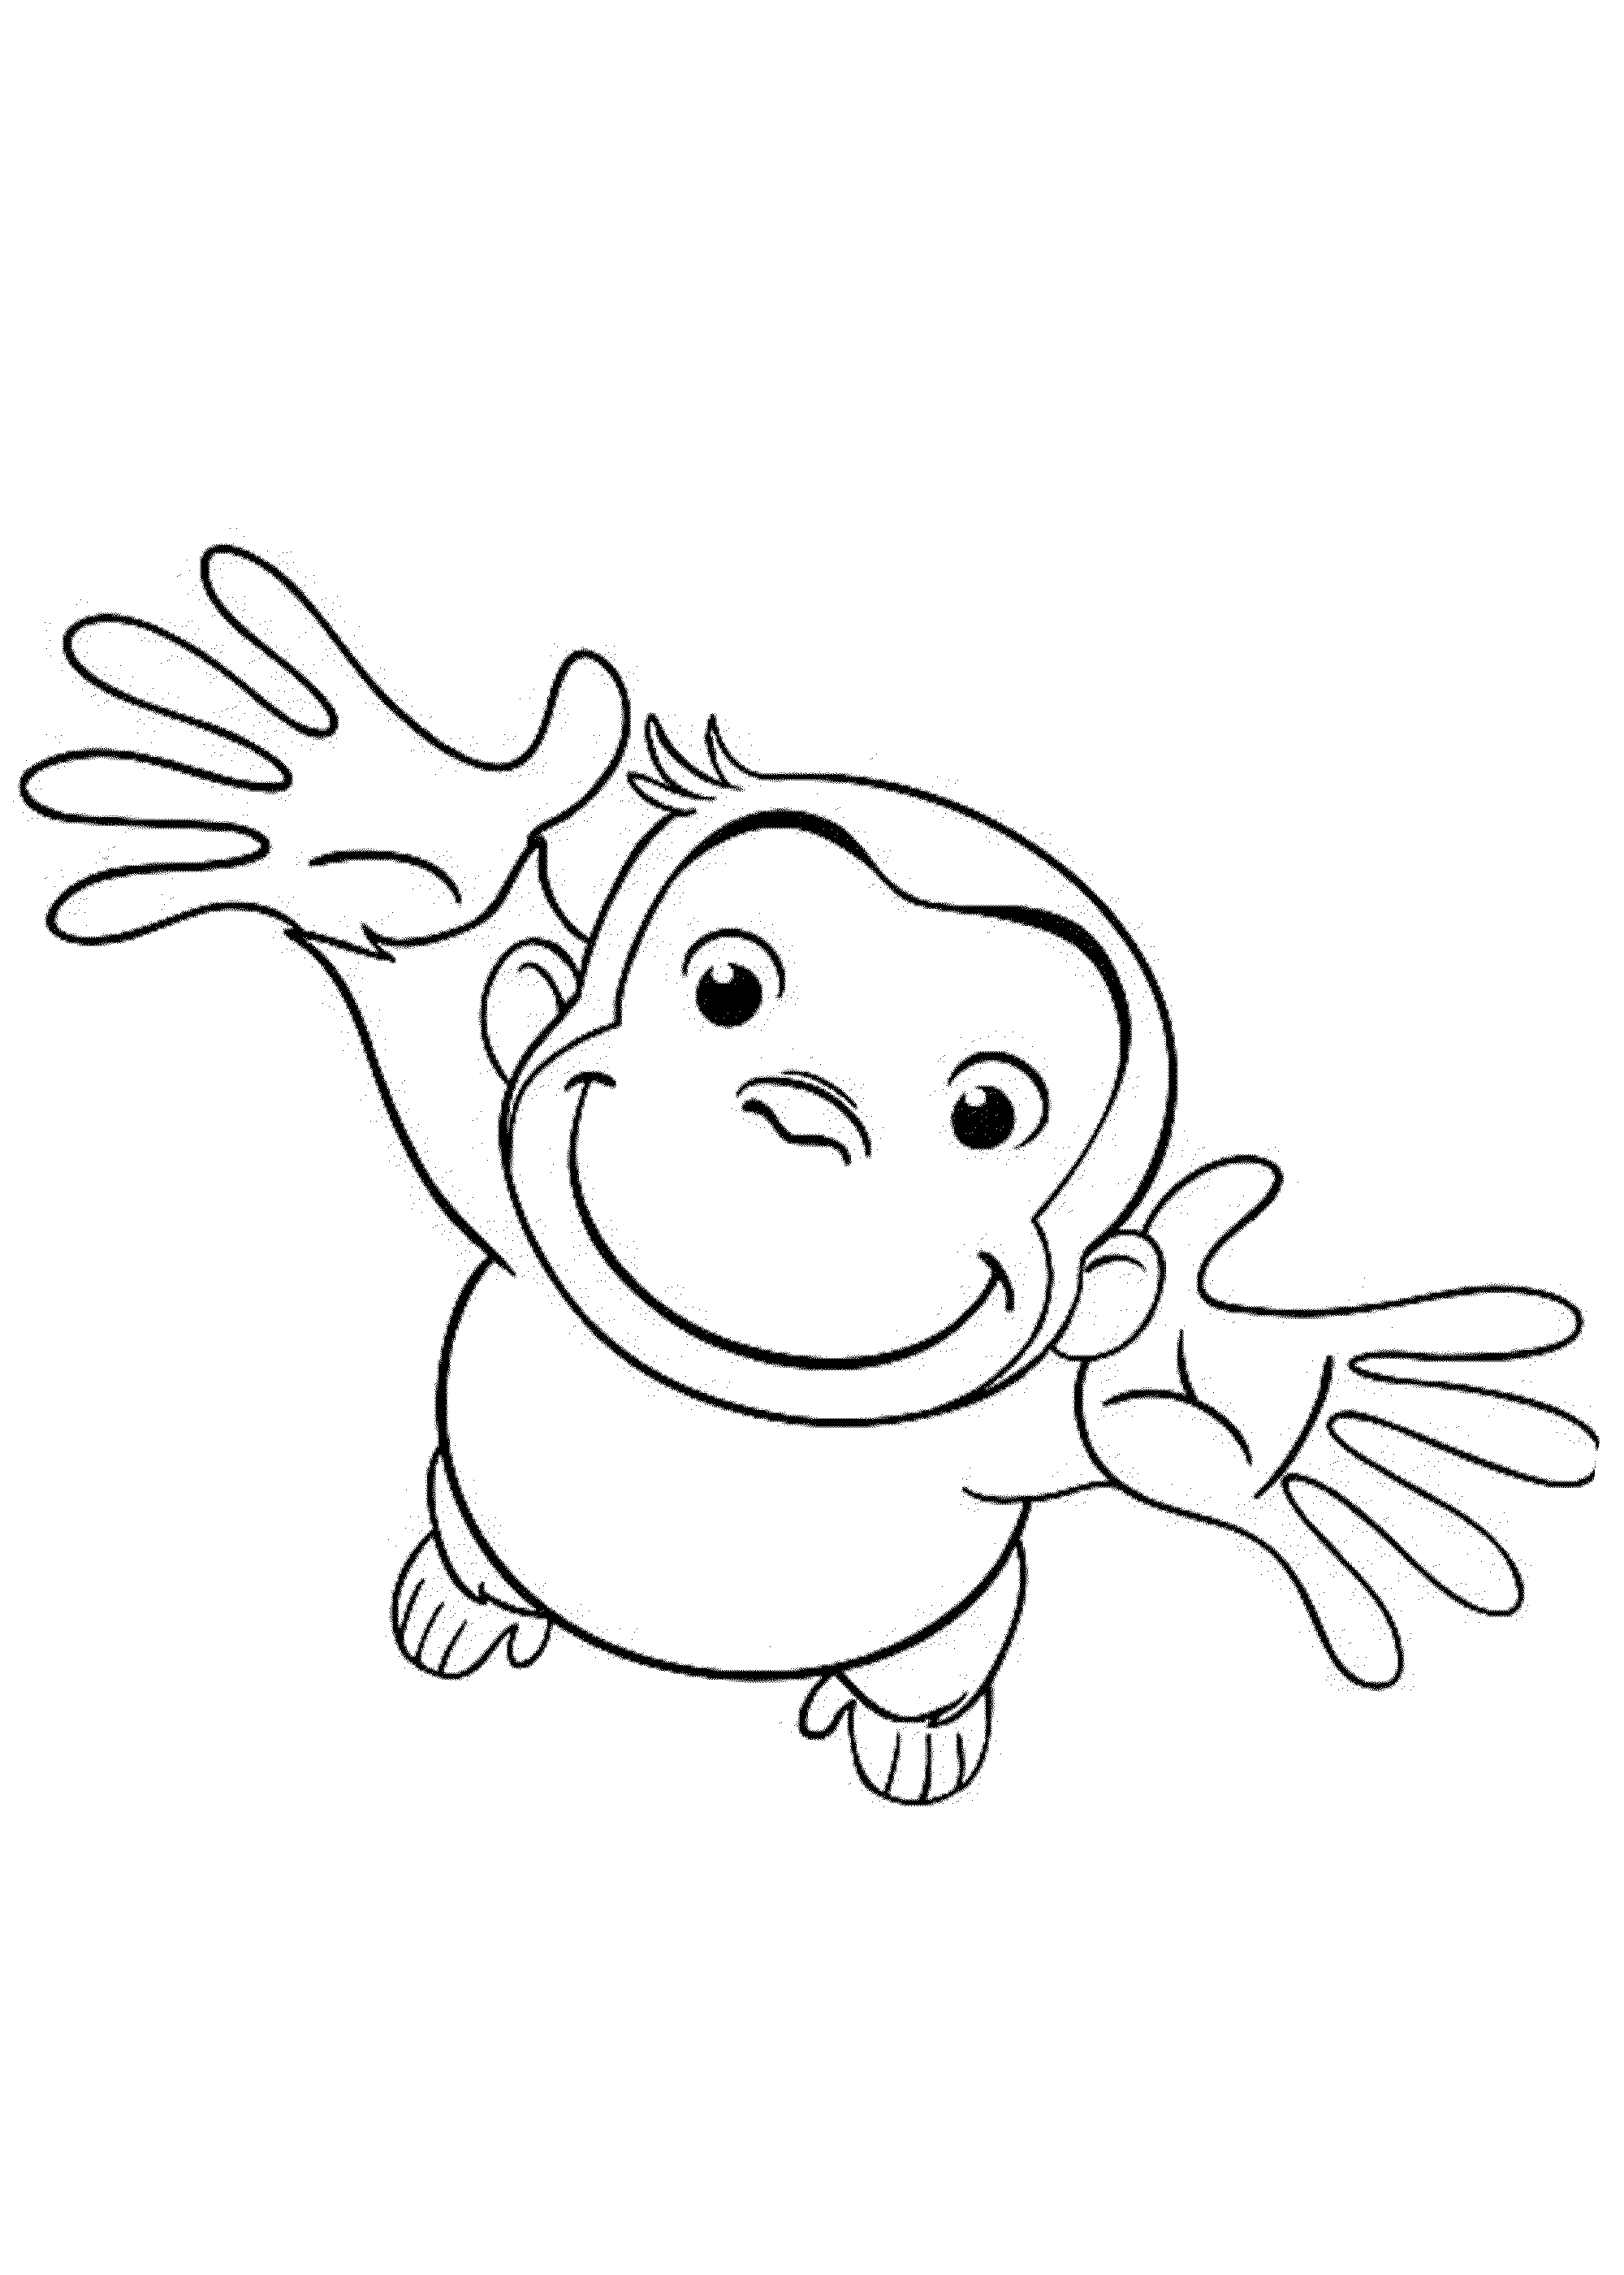 fun coloring pictures printable toad coloring pages for kids fun coloring pictures